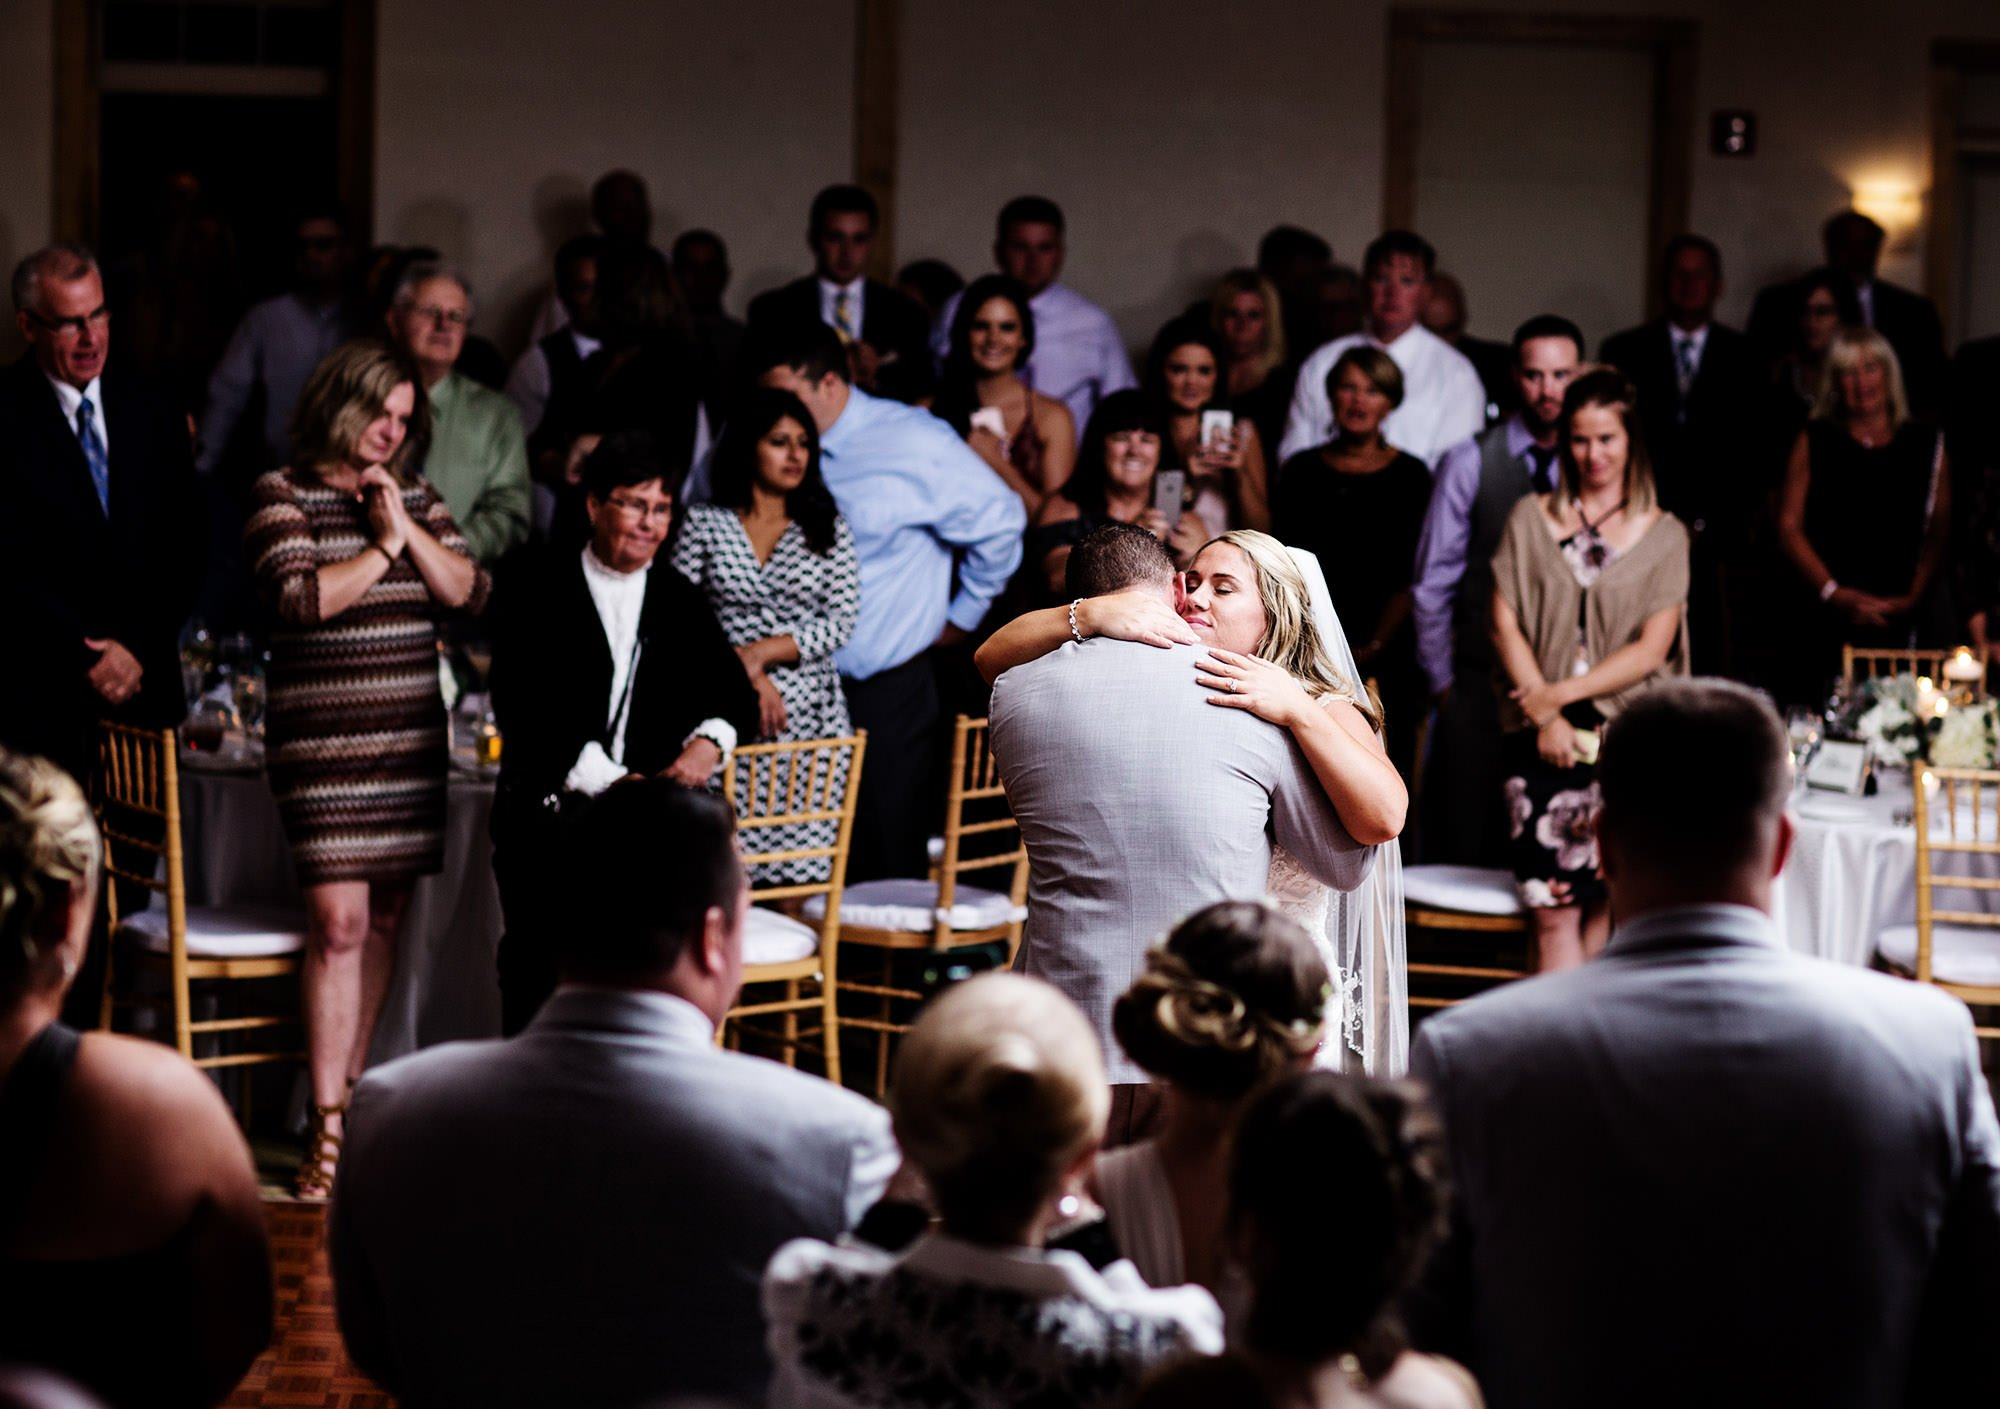 The bride and groom share their first dance at their Wequassett Resort and Golf Club Wedding.